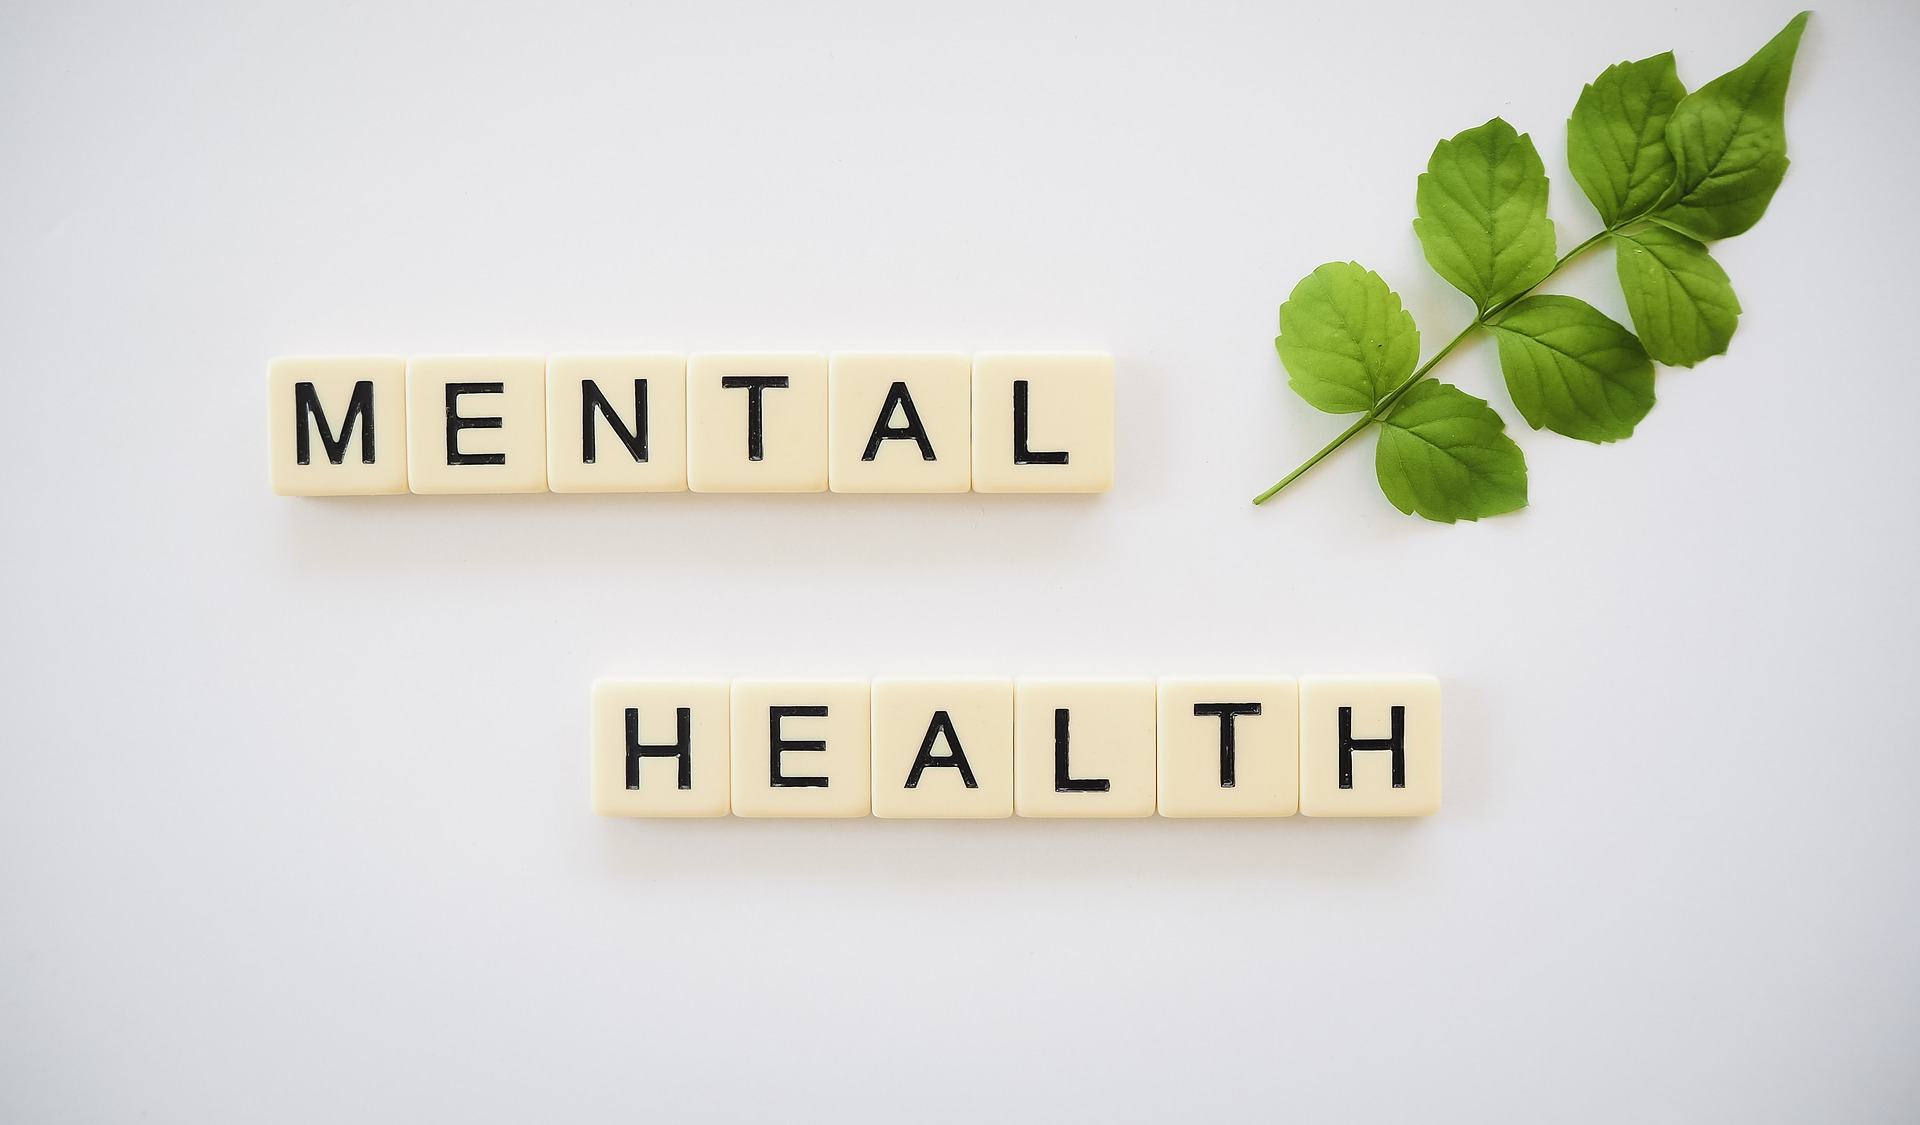 The need to create a sound mental health policy